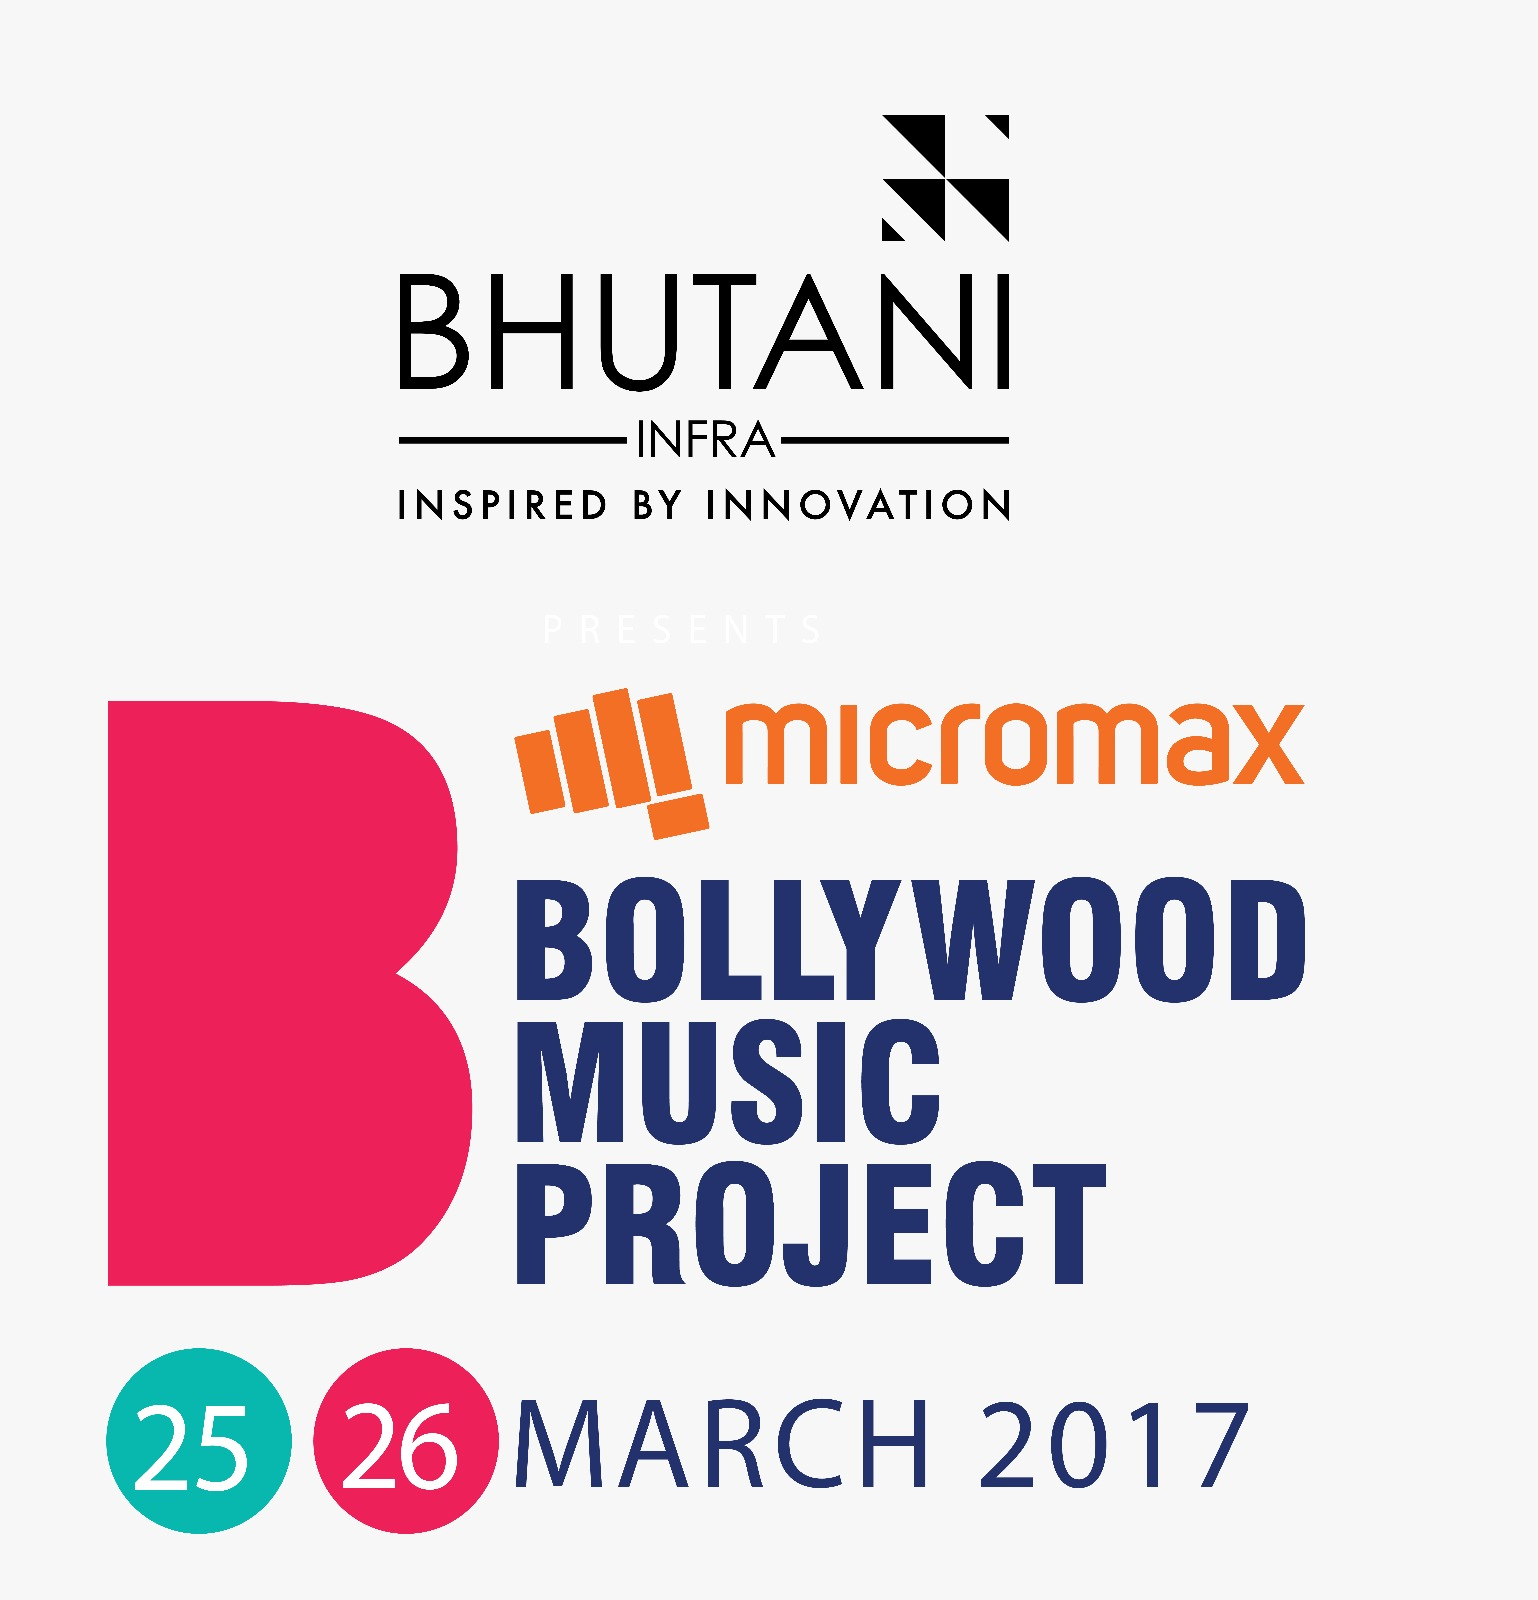 bhutani group presents micromax bollywood music project is all set